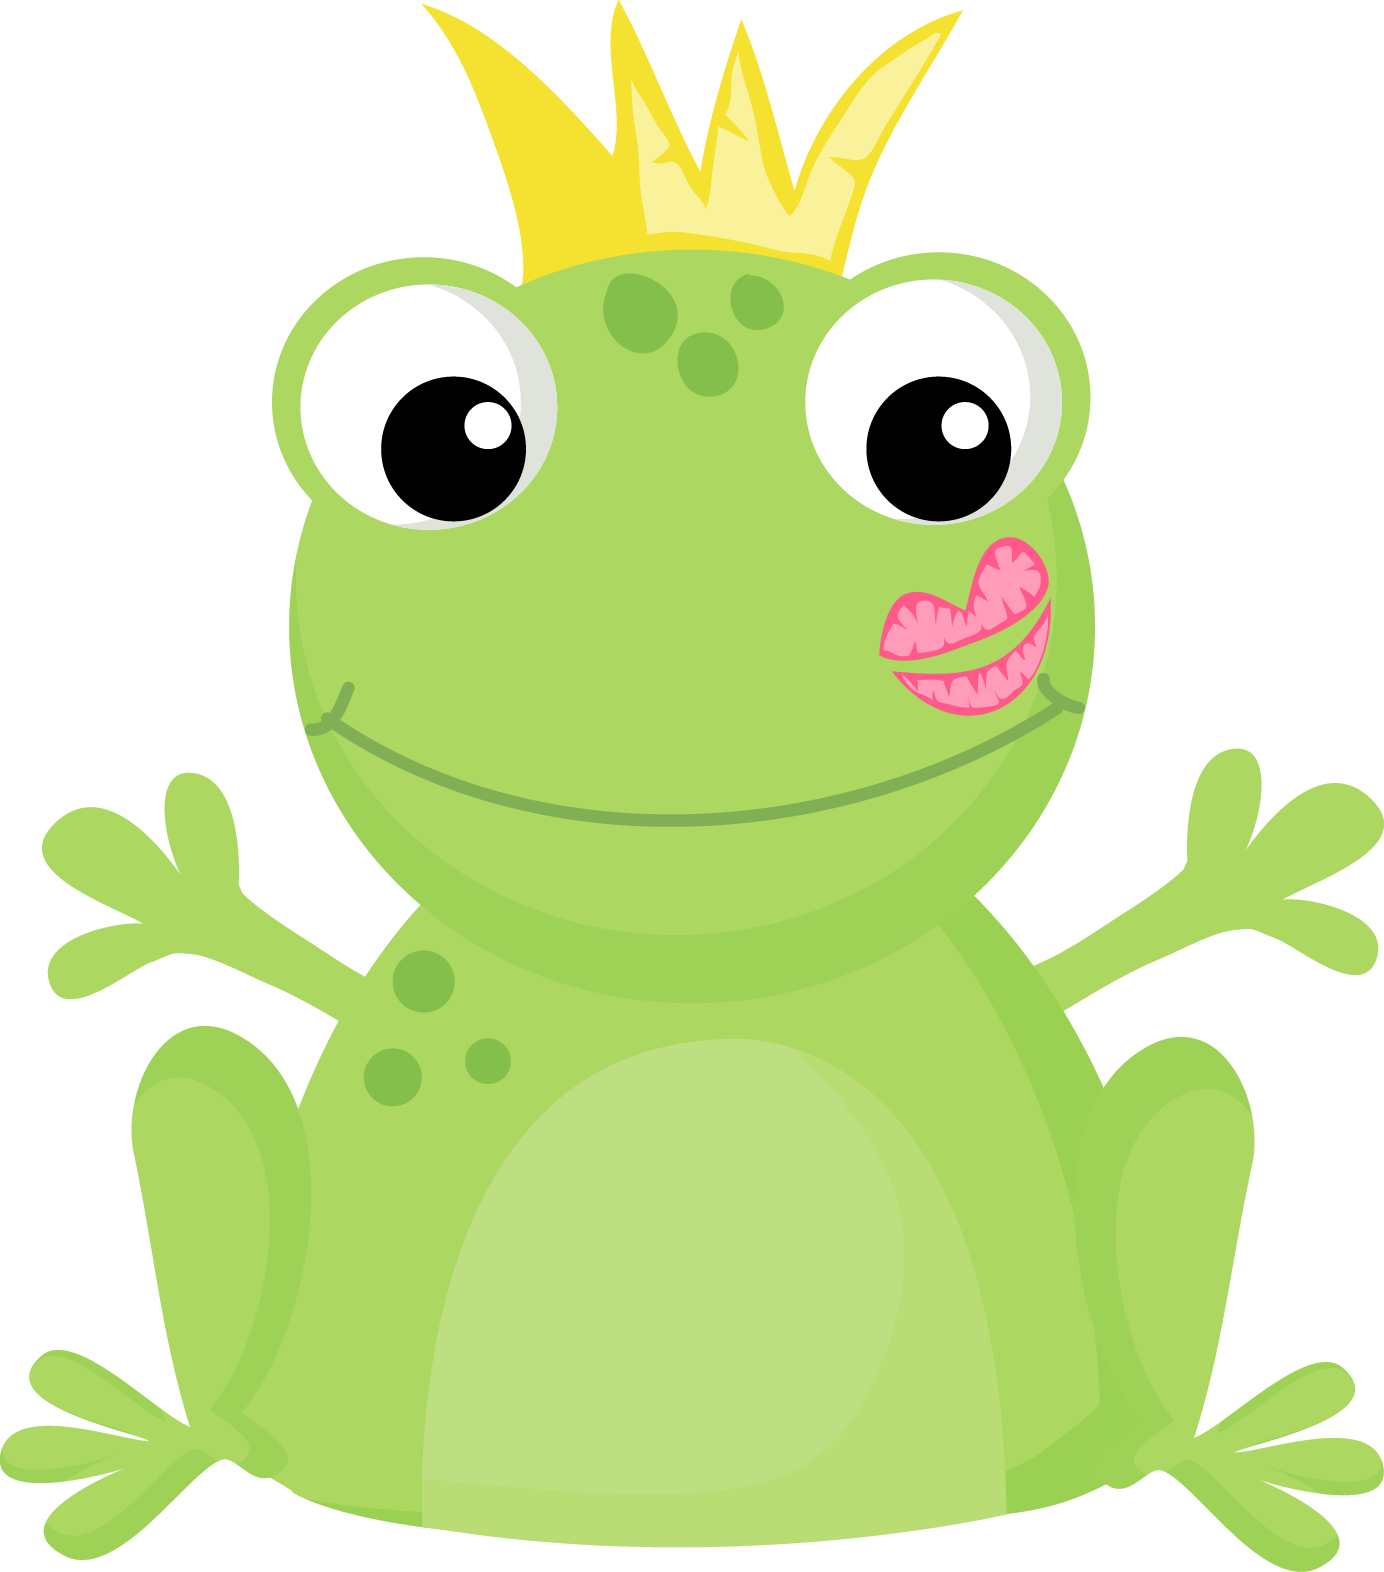 Disney the princess and frog crown clipart vector library download 28+ Collection of Cute Frog Prince Clipart | High quality, free ... vector library download